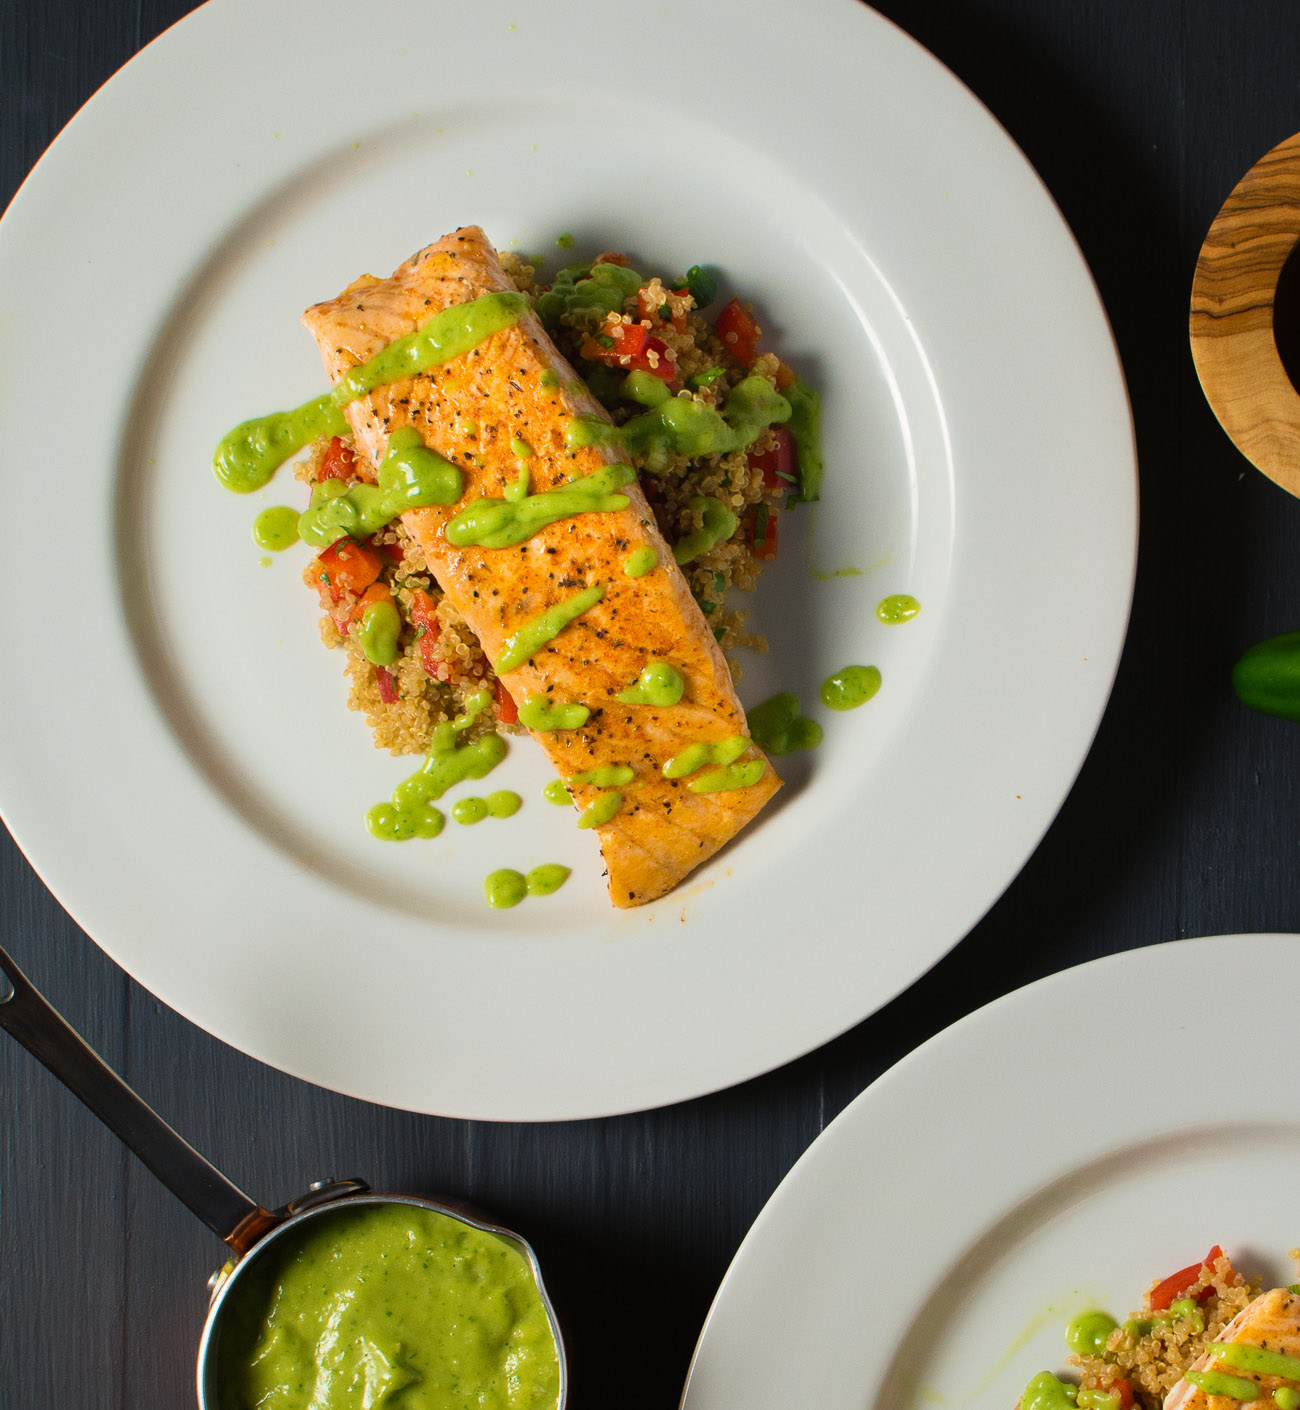 salmon with quinoa salad and avocado salsa